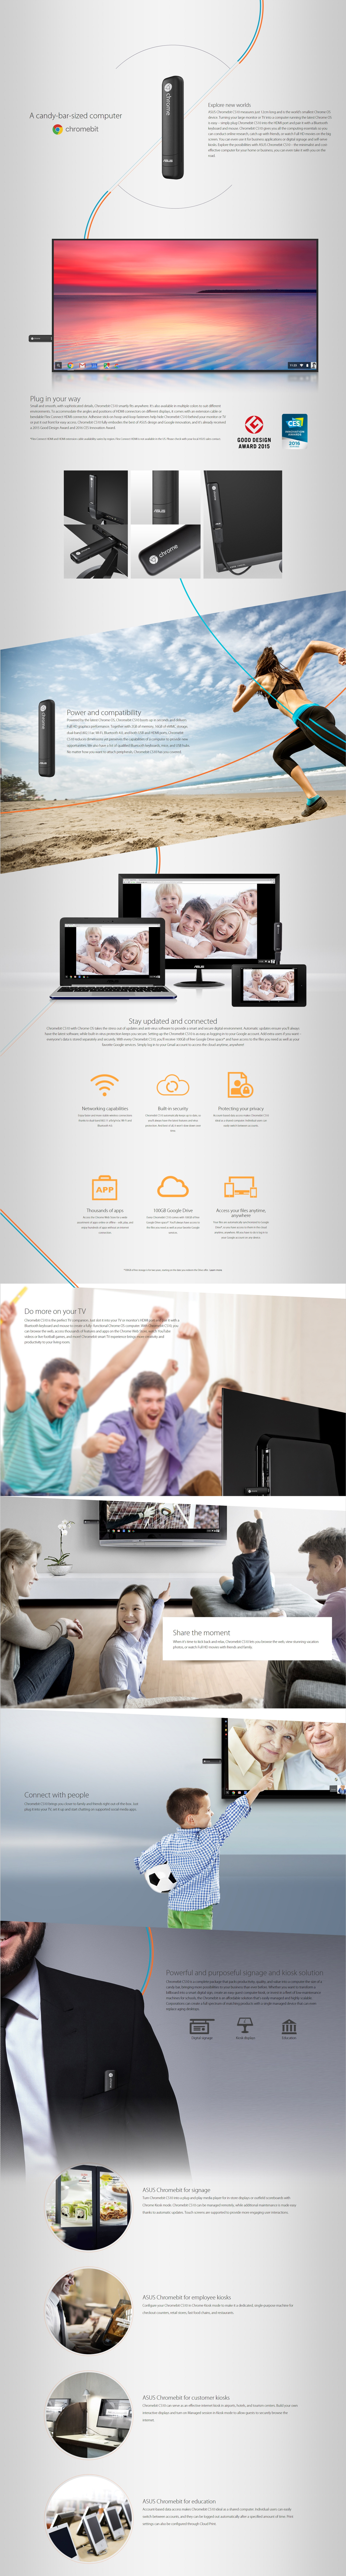 A large marketing image providing additional information about the product ASUS Chromebit CS10 mini PC Dongle - Additional alt info not provided